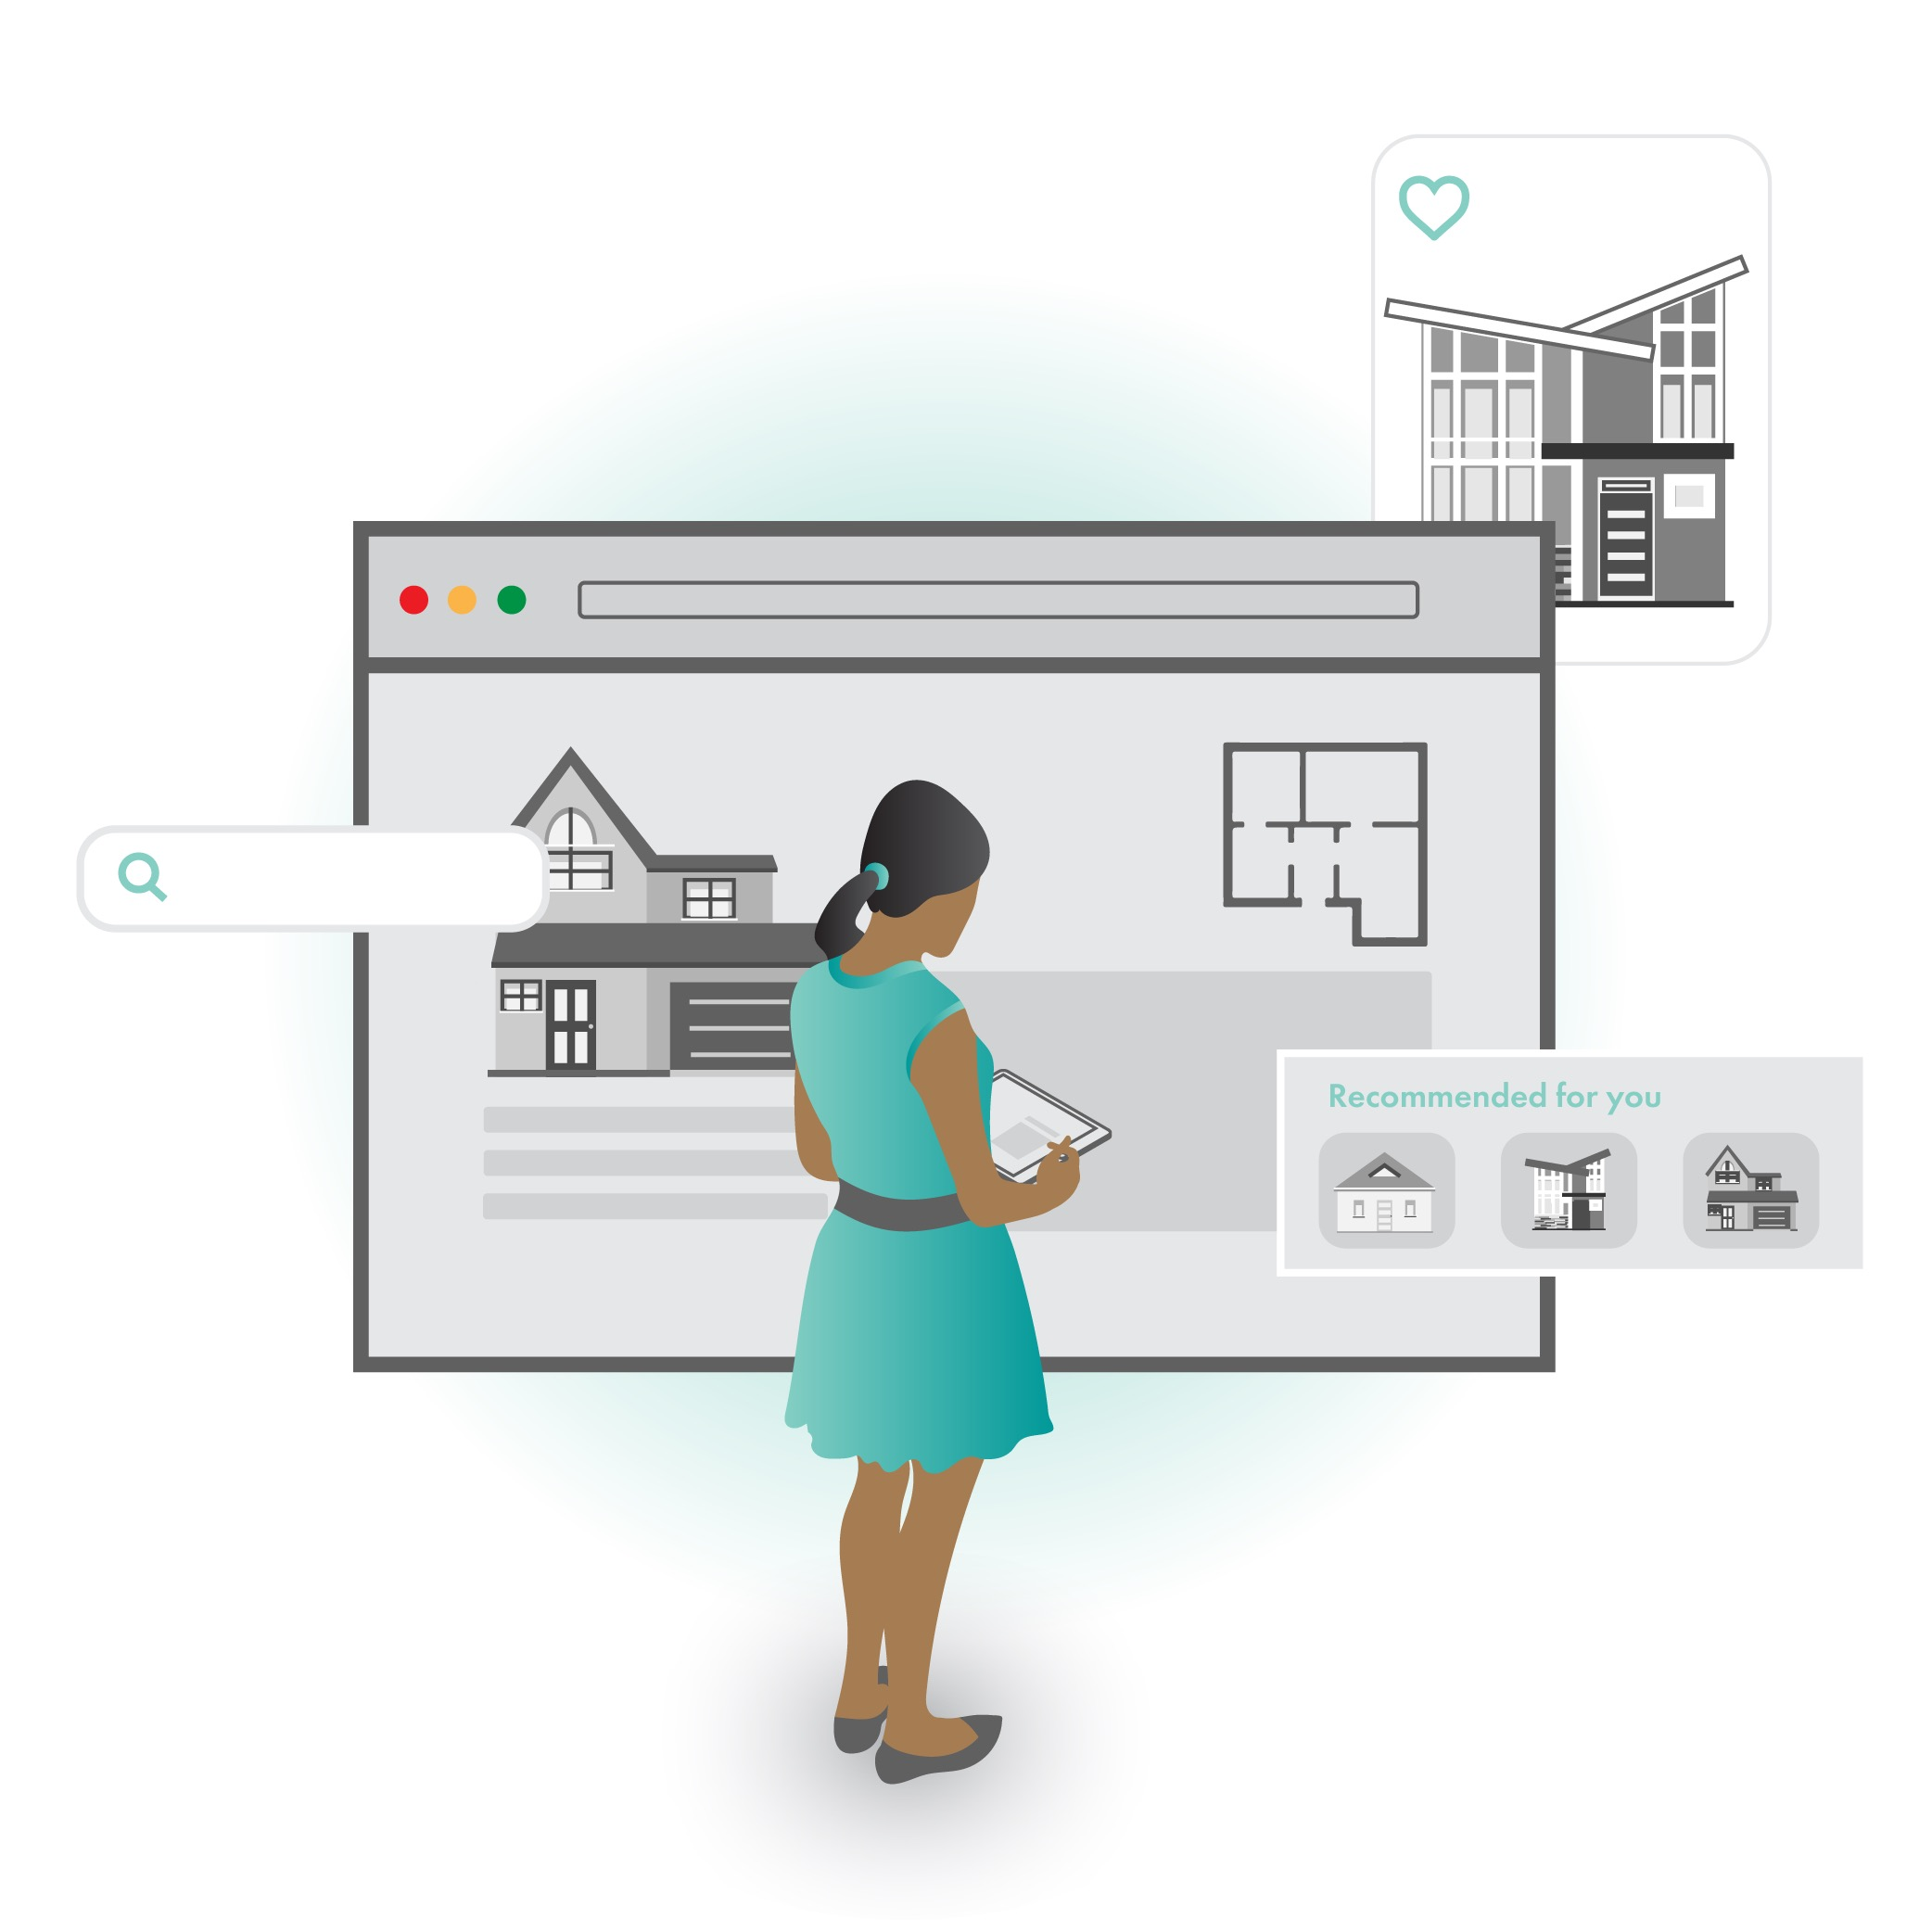 3 Ways to Improve the Digital Home Shopping Experience